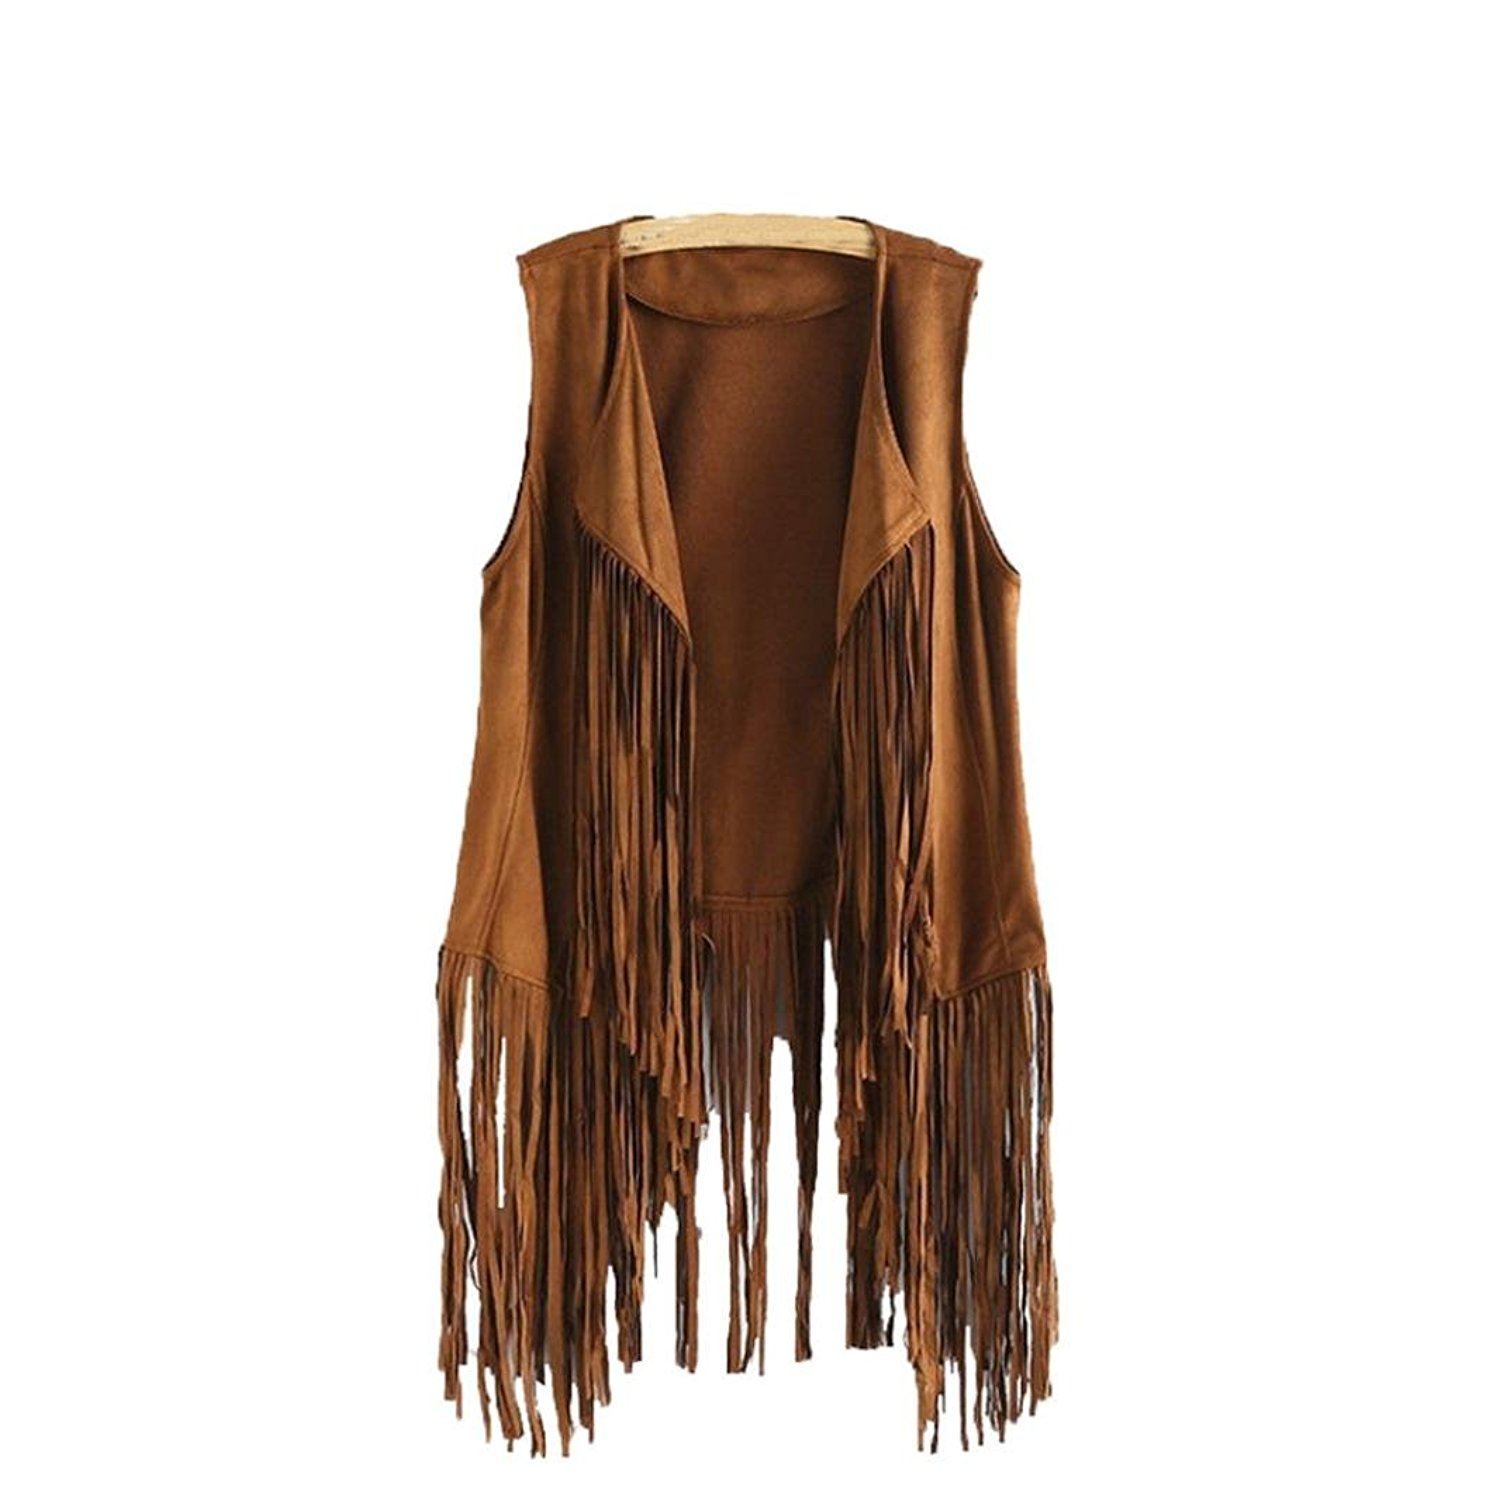 Beaded /& with Hair Real Leather Jacket SRHides Mens Western Fringed